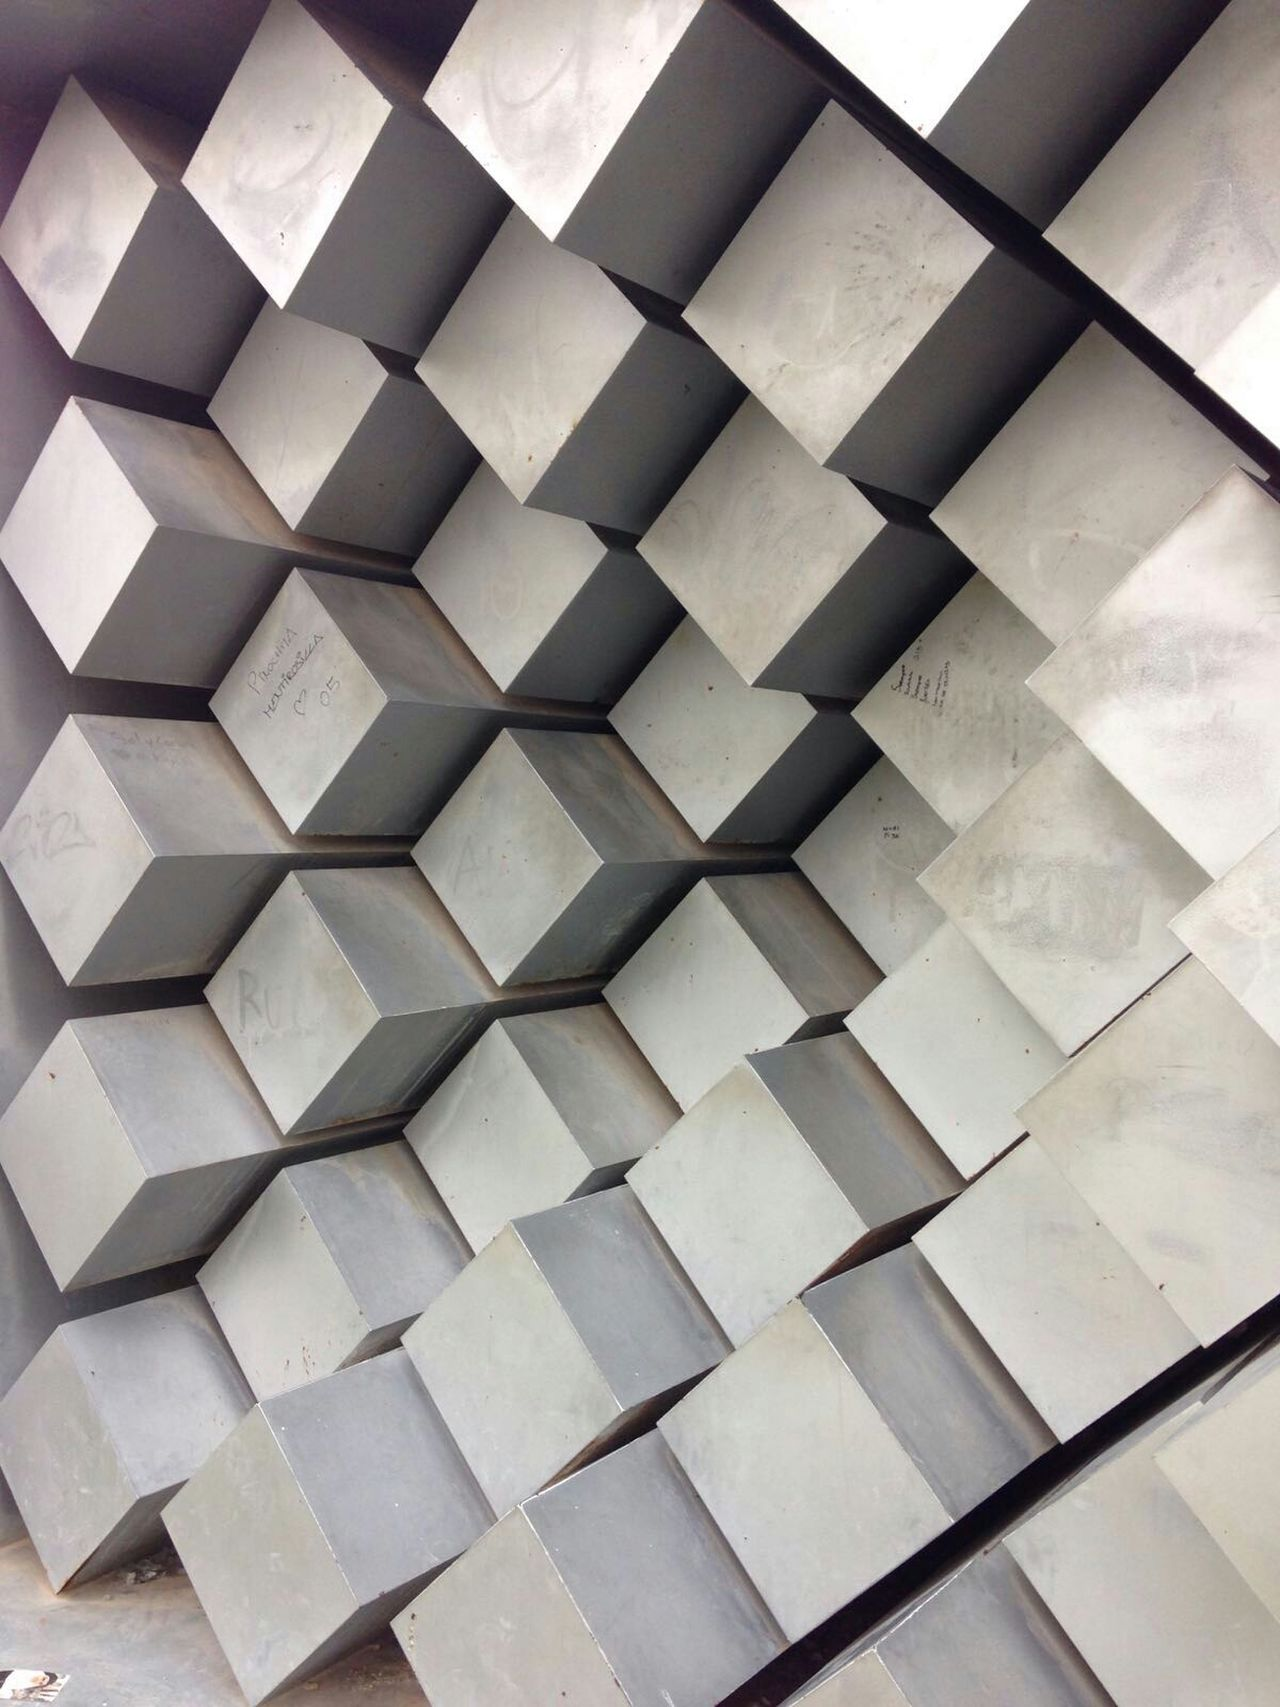 I like how the light moves between the elements. Metal Cubic Surface Three Dimentional Wall Surface Textures And Surfaces Surface Cubes Metal Shades Of Grey Dimensions Dimensions Intersection Pattern Pattern, Texture, Shape And Form Patterns Pattern Pieces Valencia, Spain